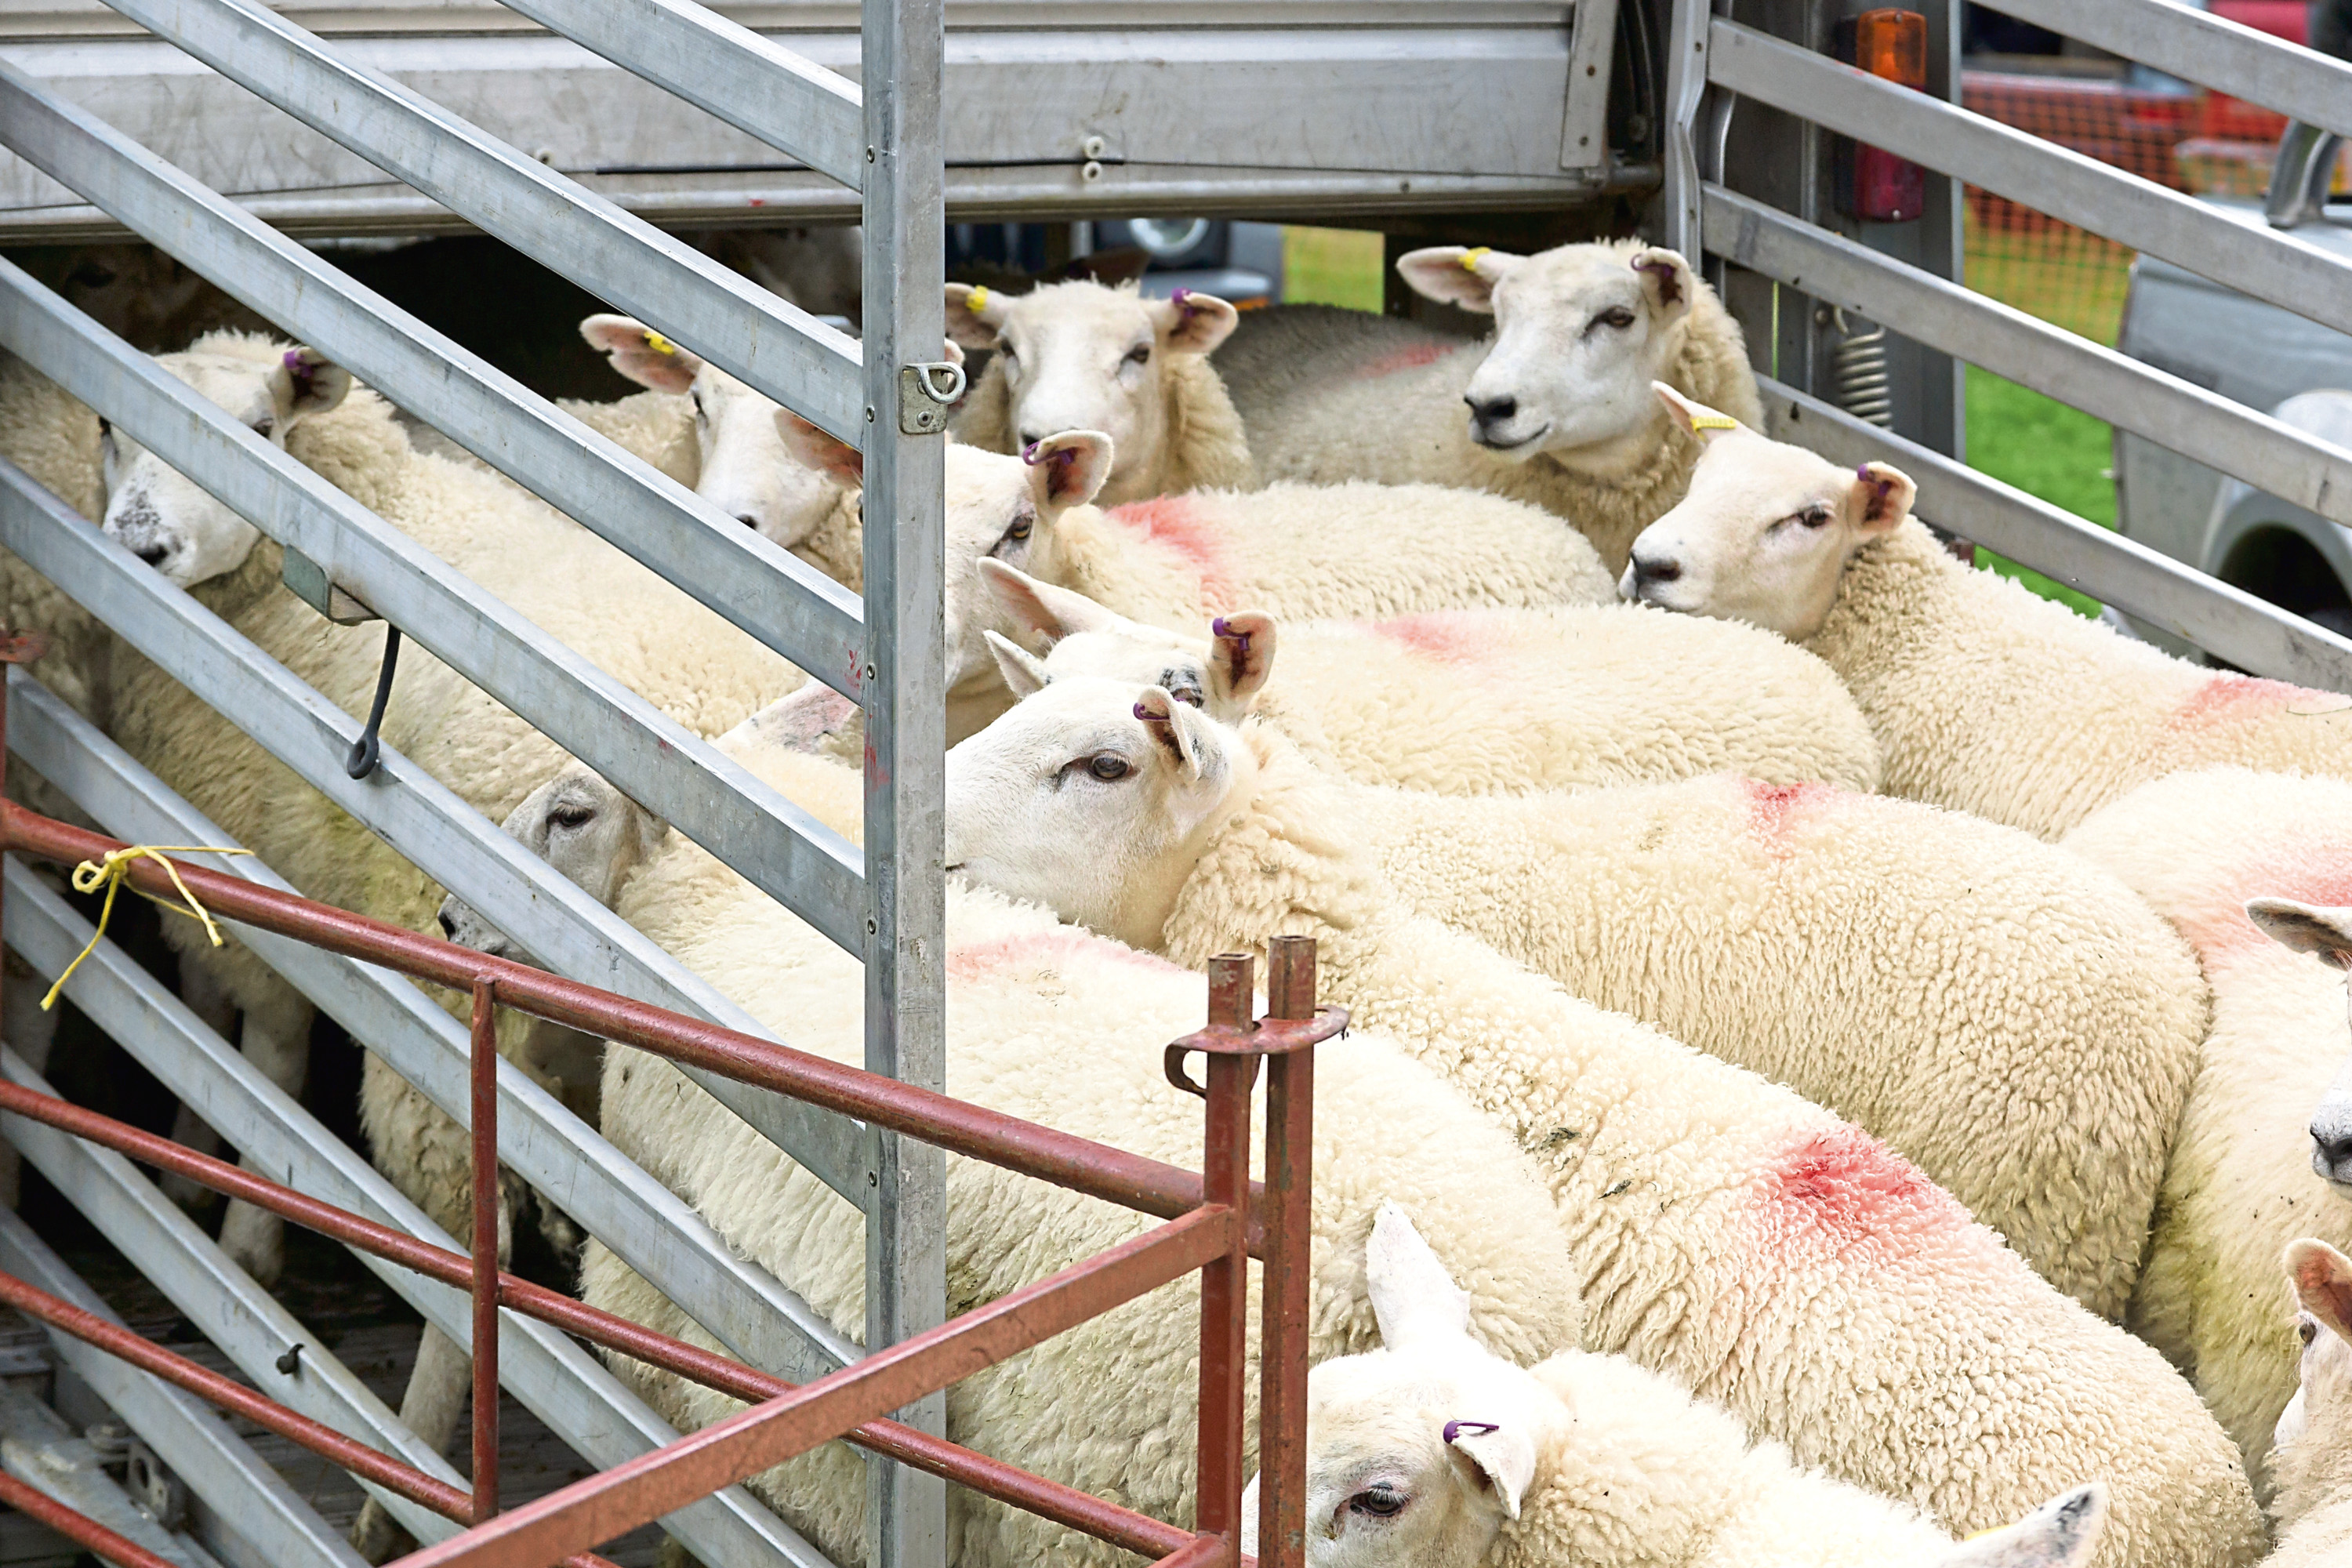 Figures from rural insurer NFU Mutual reveal the value of livestock theft has increased to £3 million in the last two years.